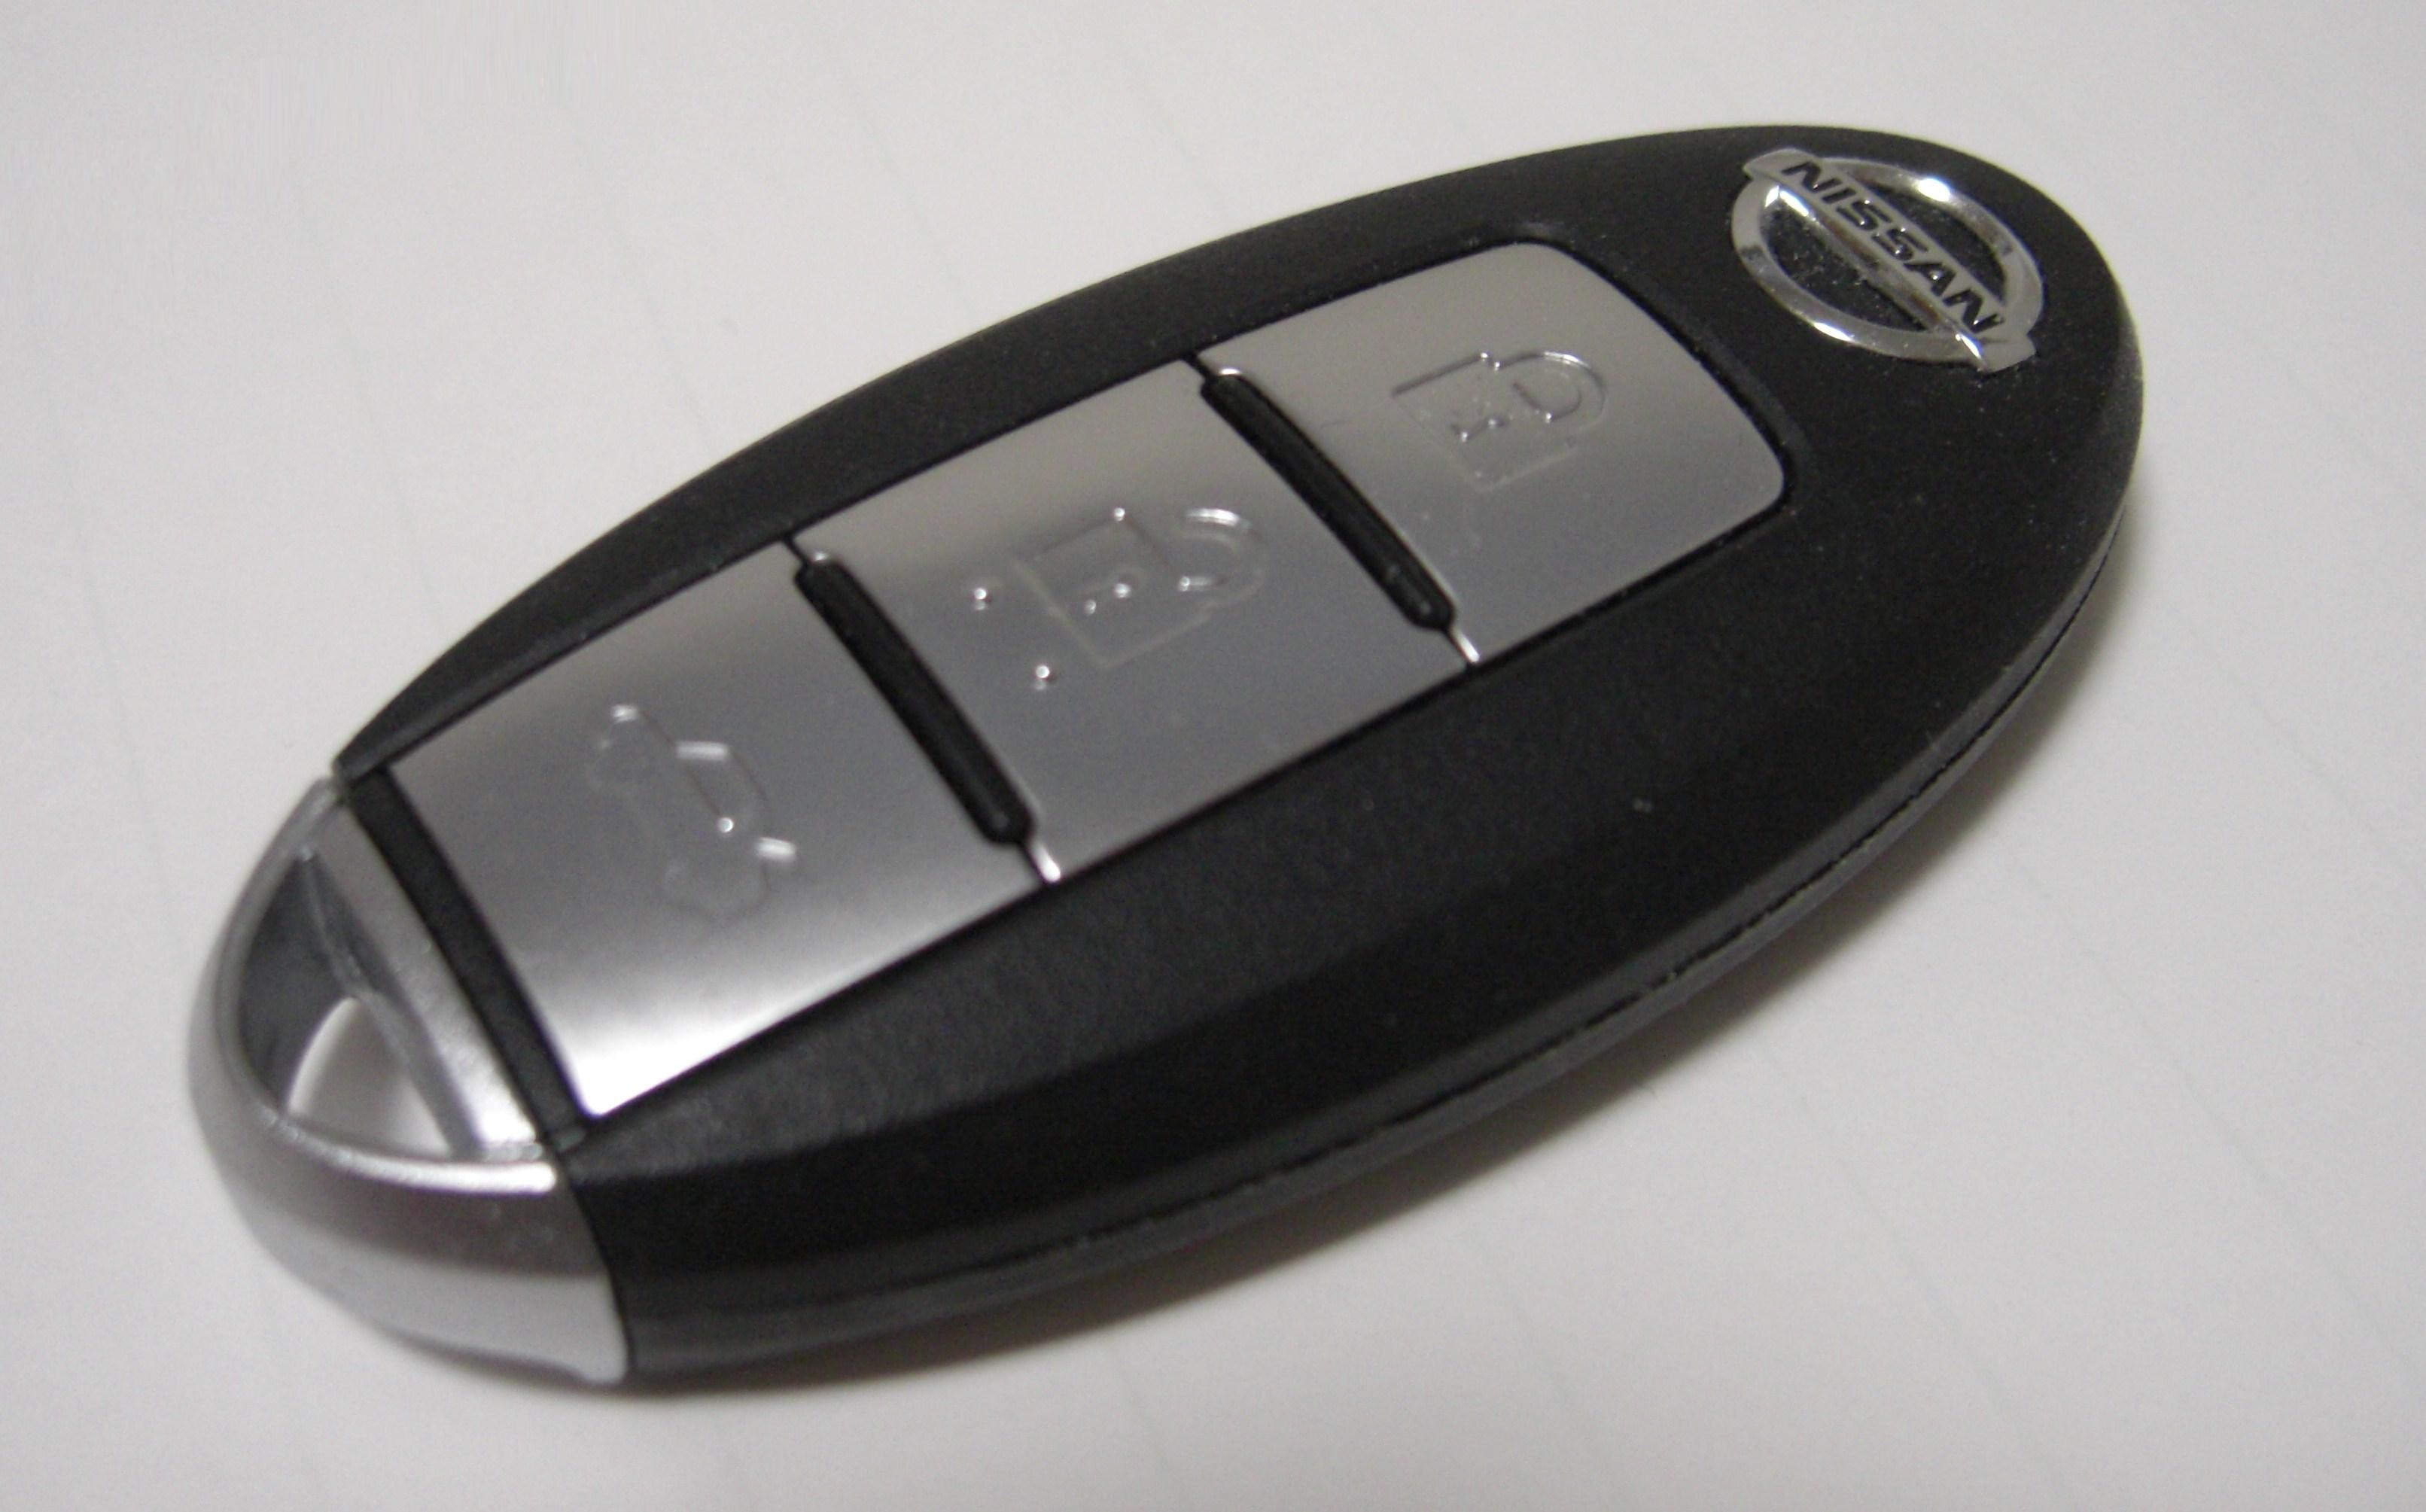 Captivating BELOW ARE SOME OF THE MODELS WE COVER. Nissan Tiida Key Replacement ...